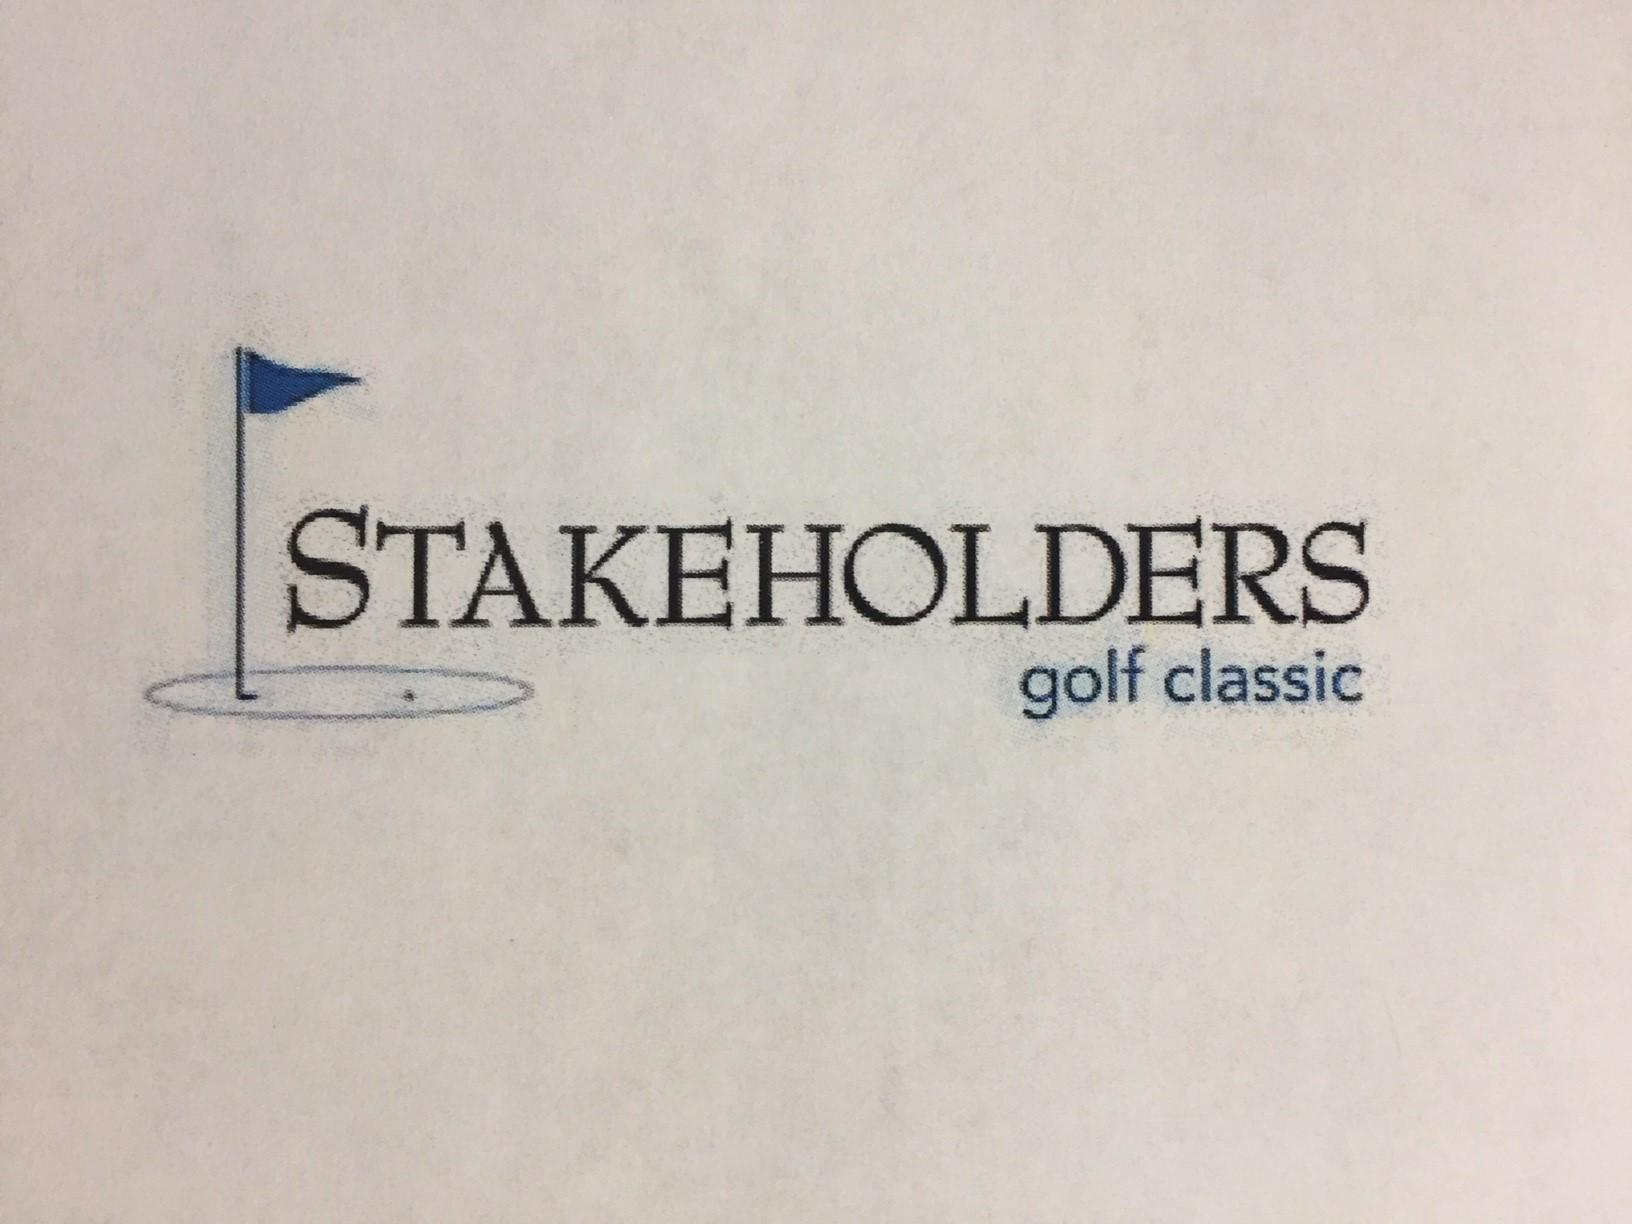 7th Annual Stakeholders Golf Classic